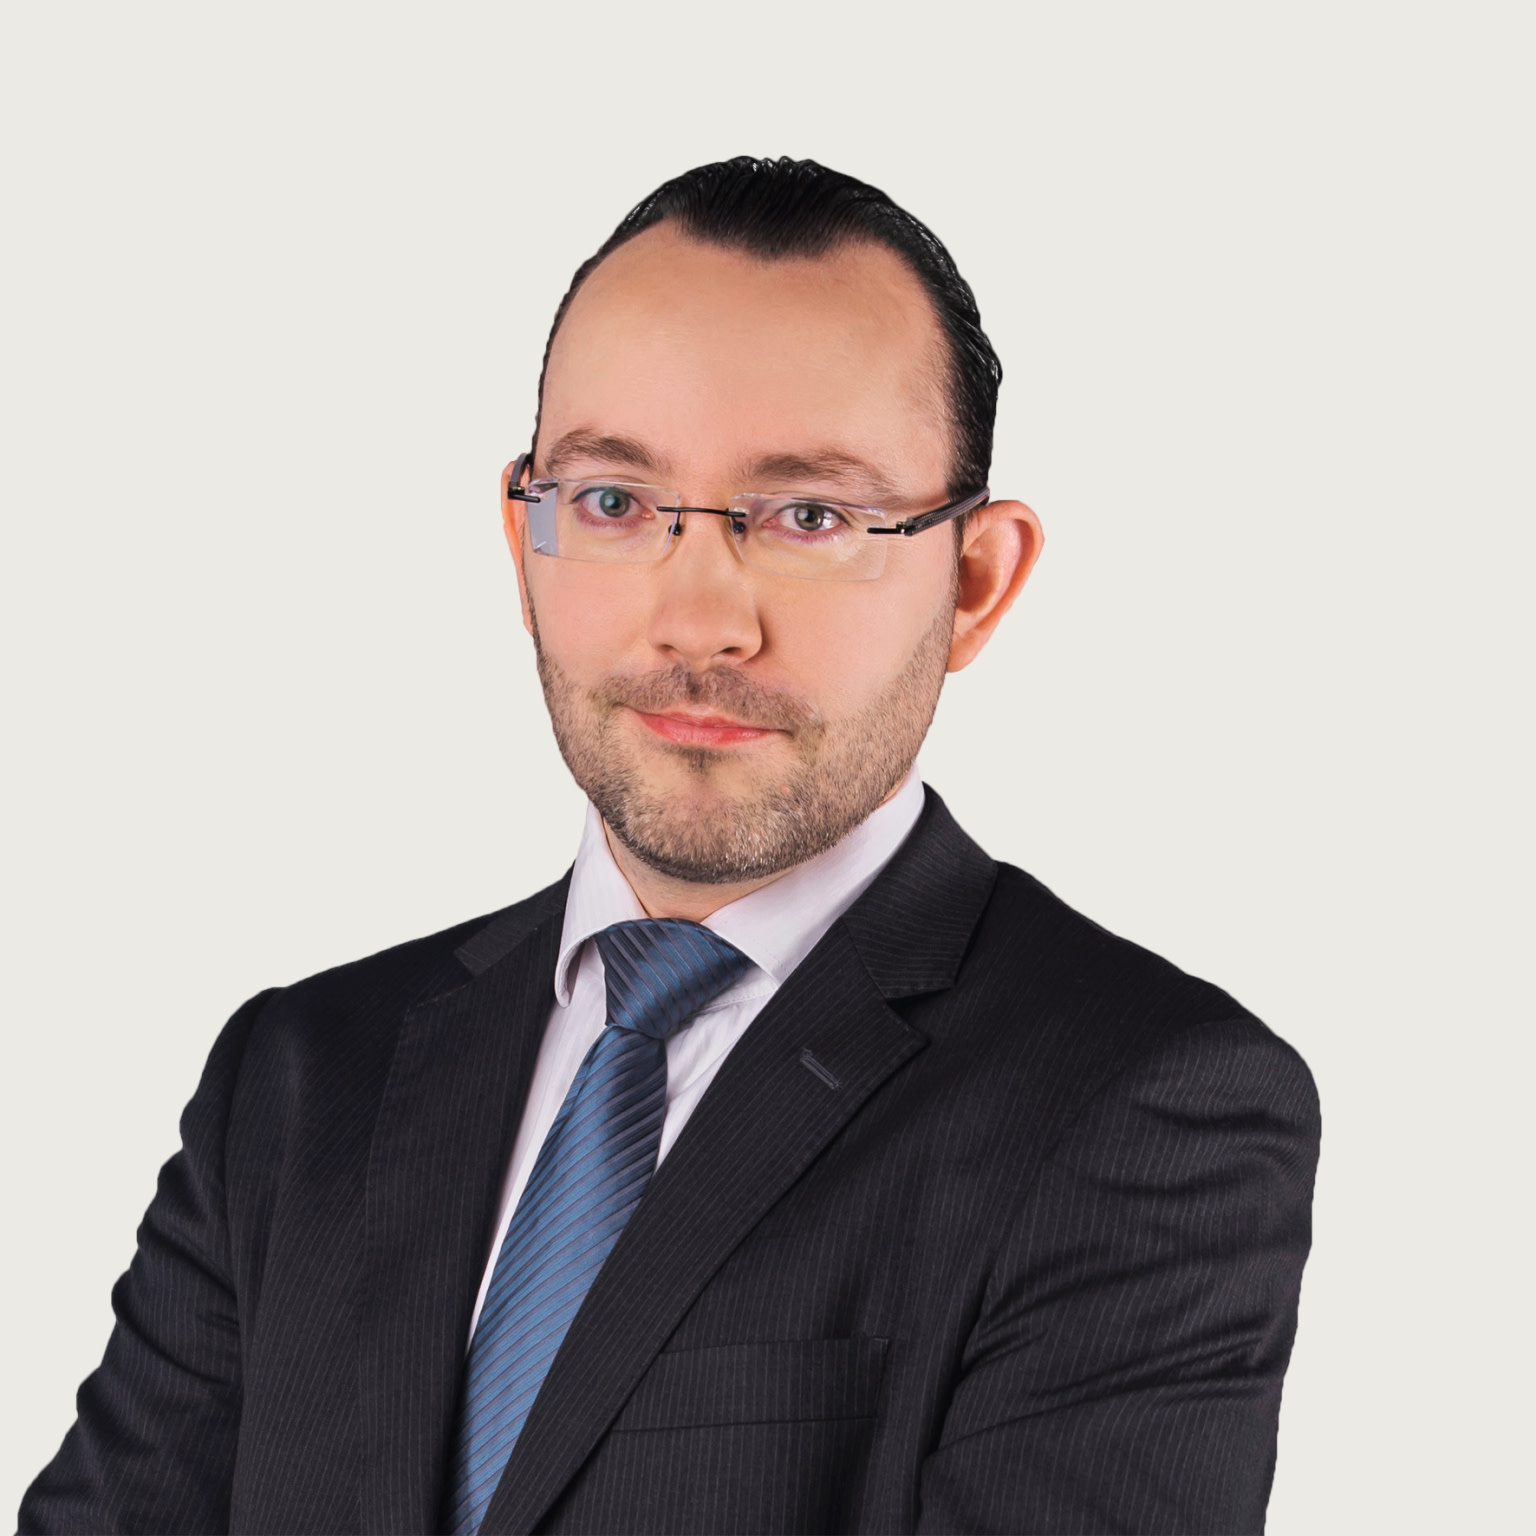 ciaran-mccormack-regional-director-for-the-middle-east-linesight